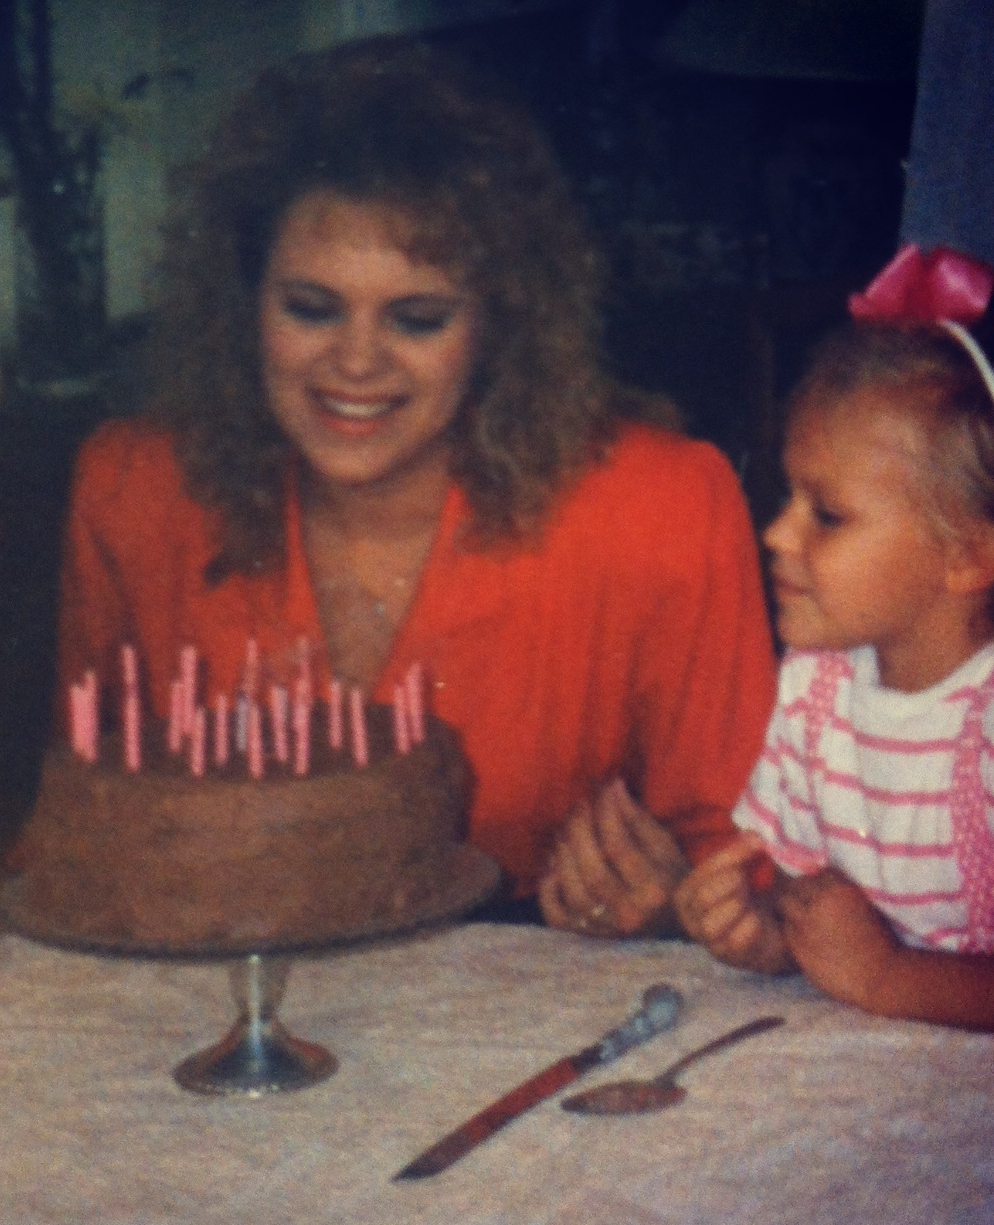 Big hair, tans and bows! Me and mom circa 1990